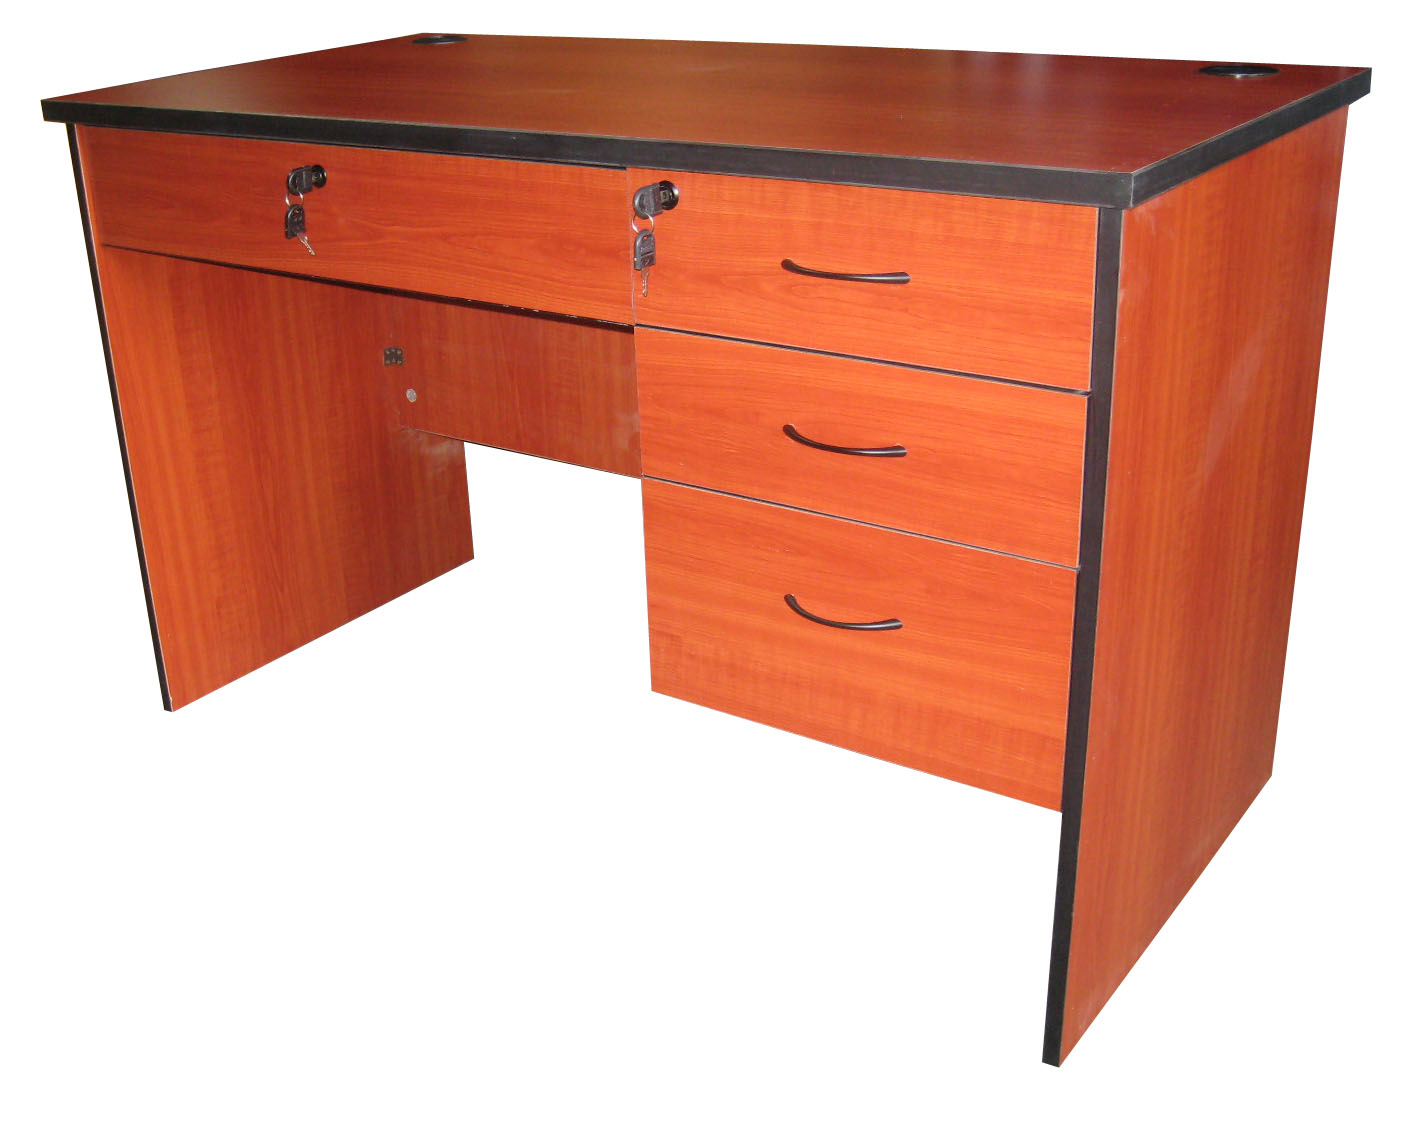 wood office table. SKU: HM-17 (HUNGARY). Soho HUNGARY Office Table Wood O